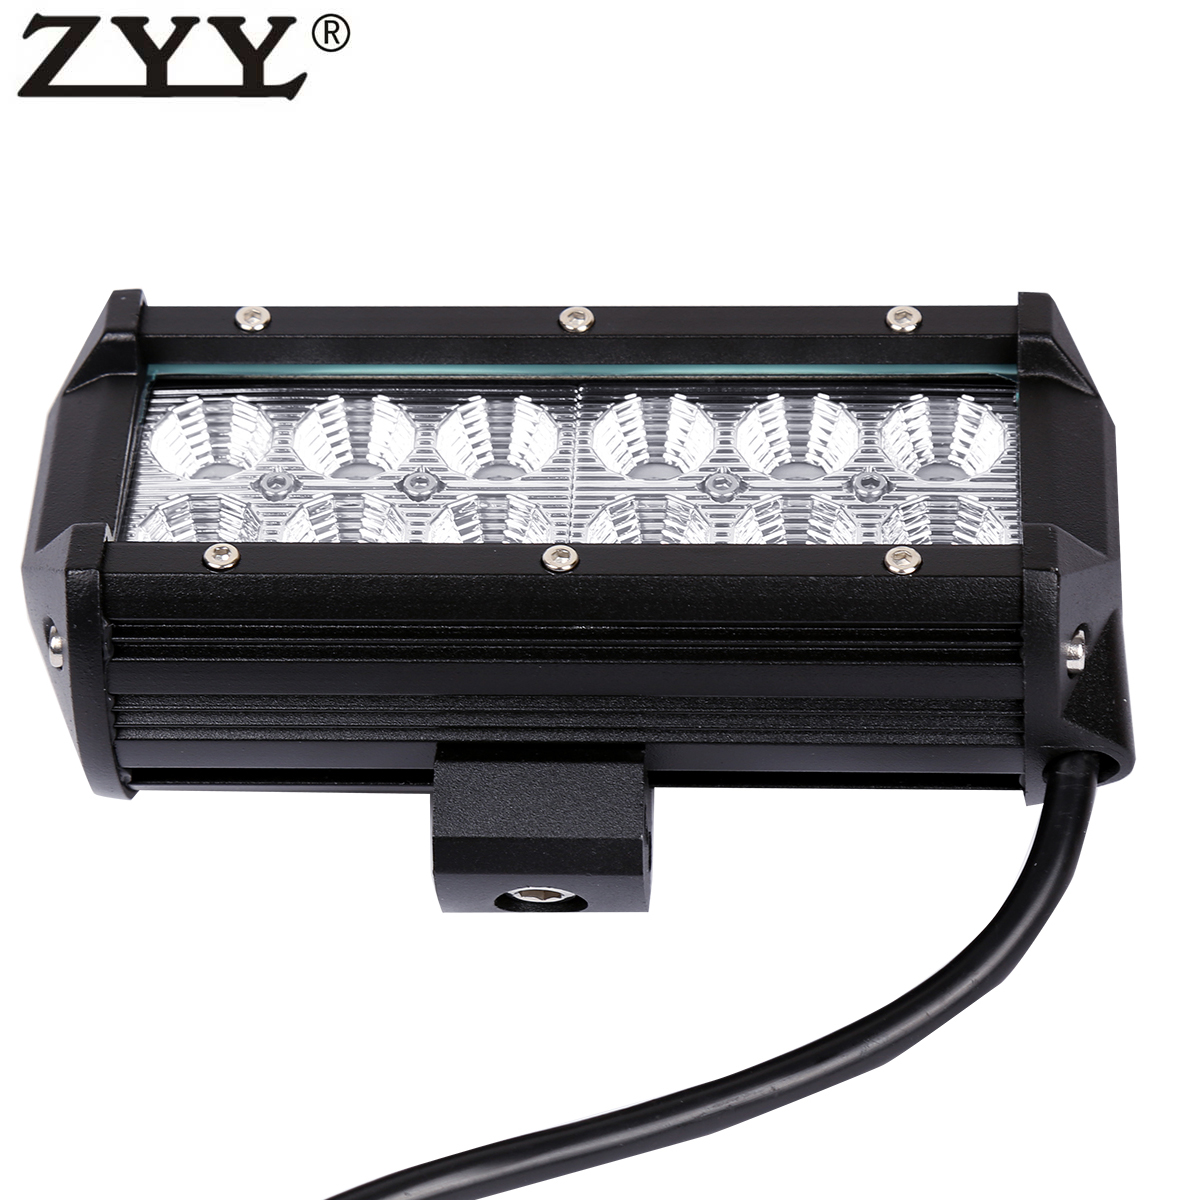 2x 7 Quot 36w 12x Cree Led Flood Beam Work Light Bar Driving